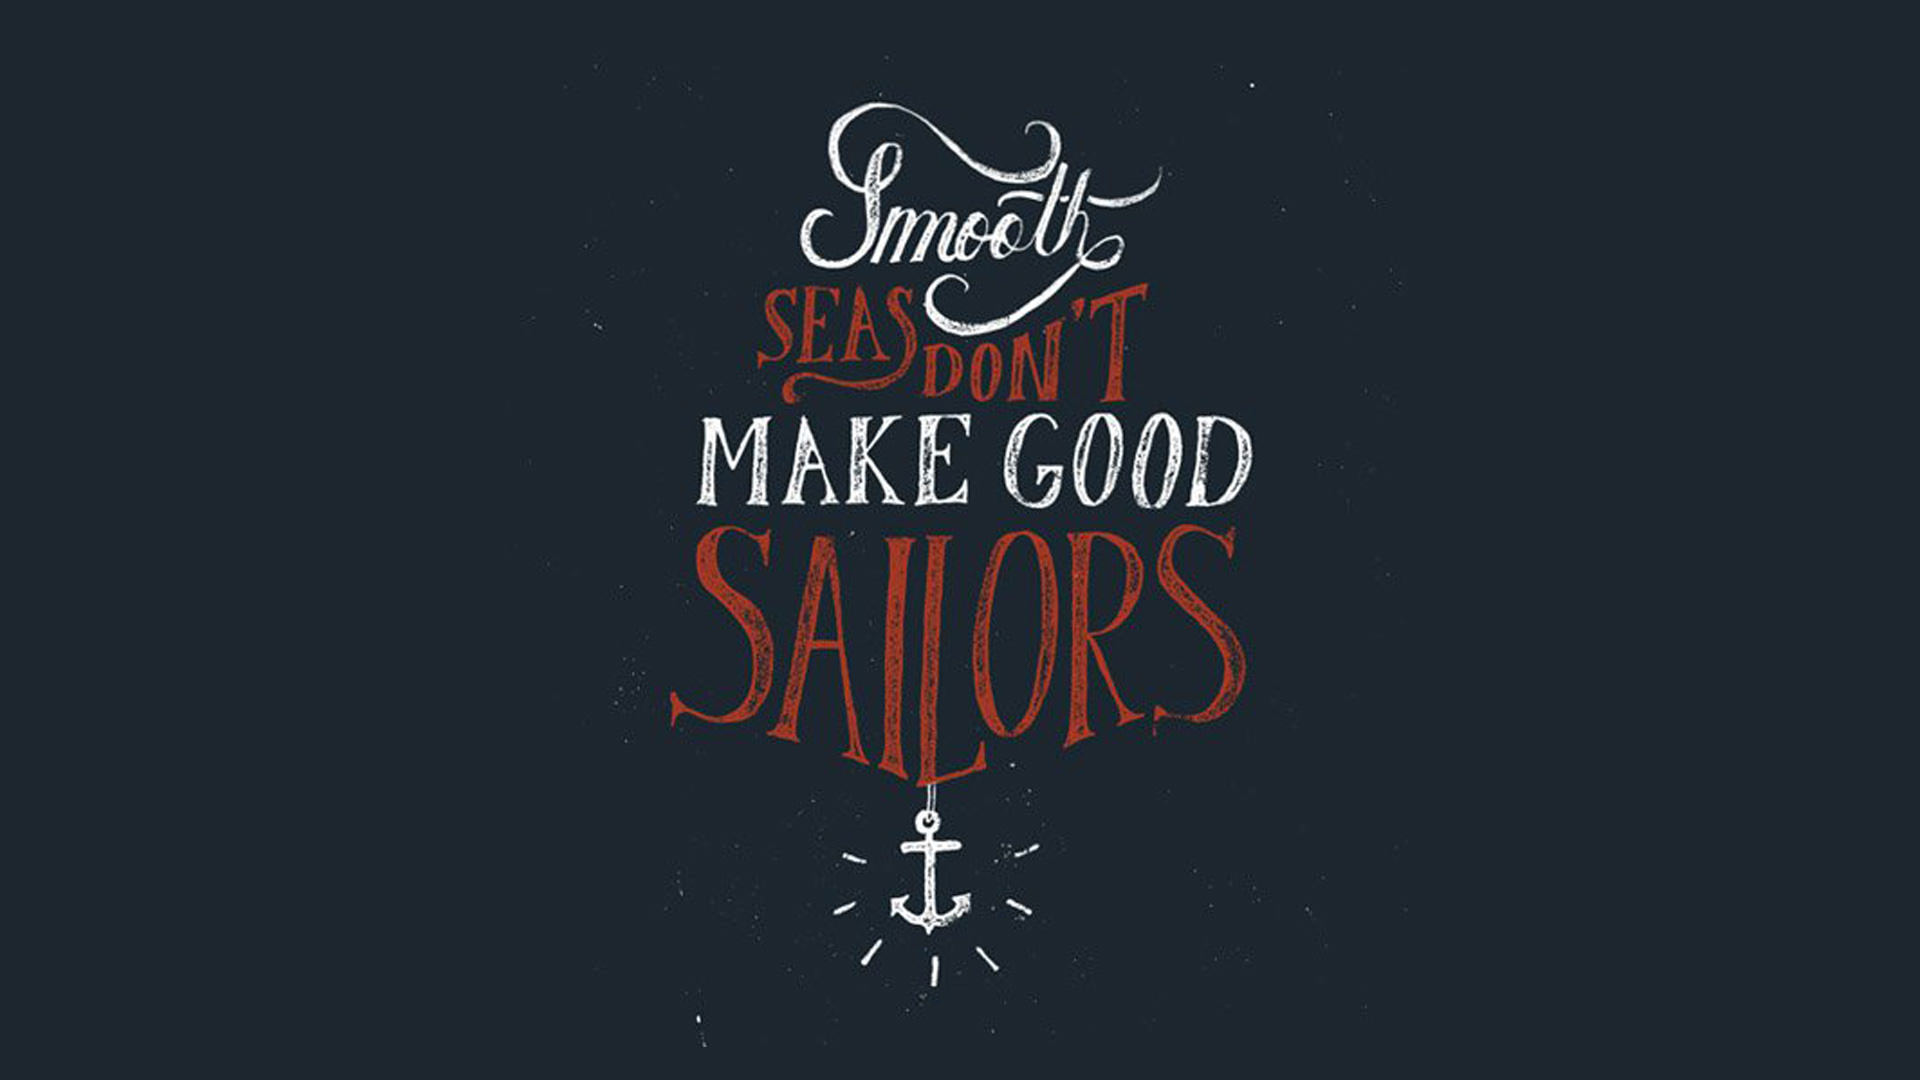 Smooth Sailing Quotes Quotesgram: 35 Famous Positive Quotes About Life Wisdom And Success By